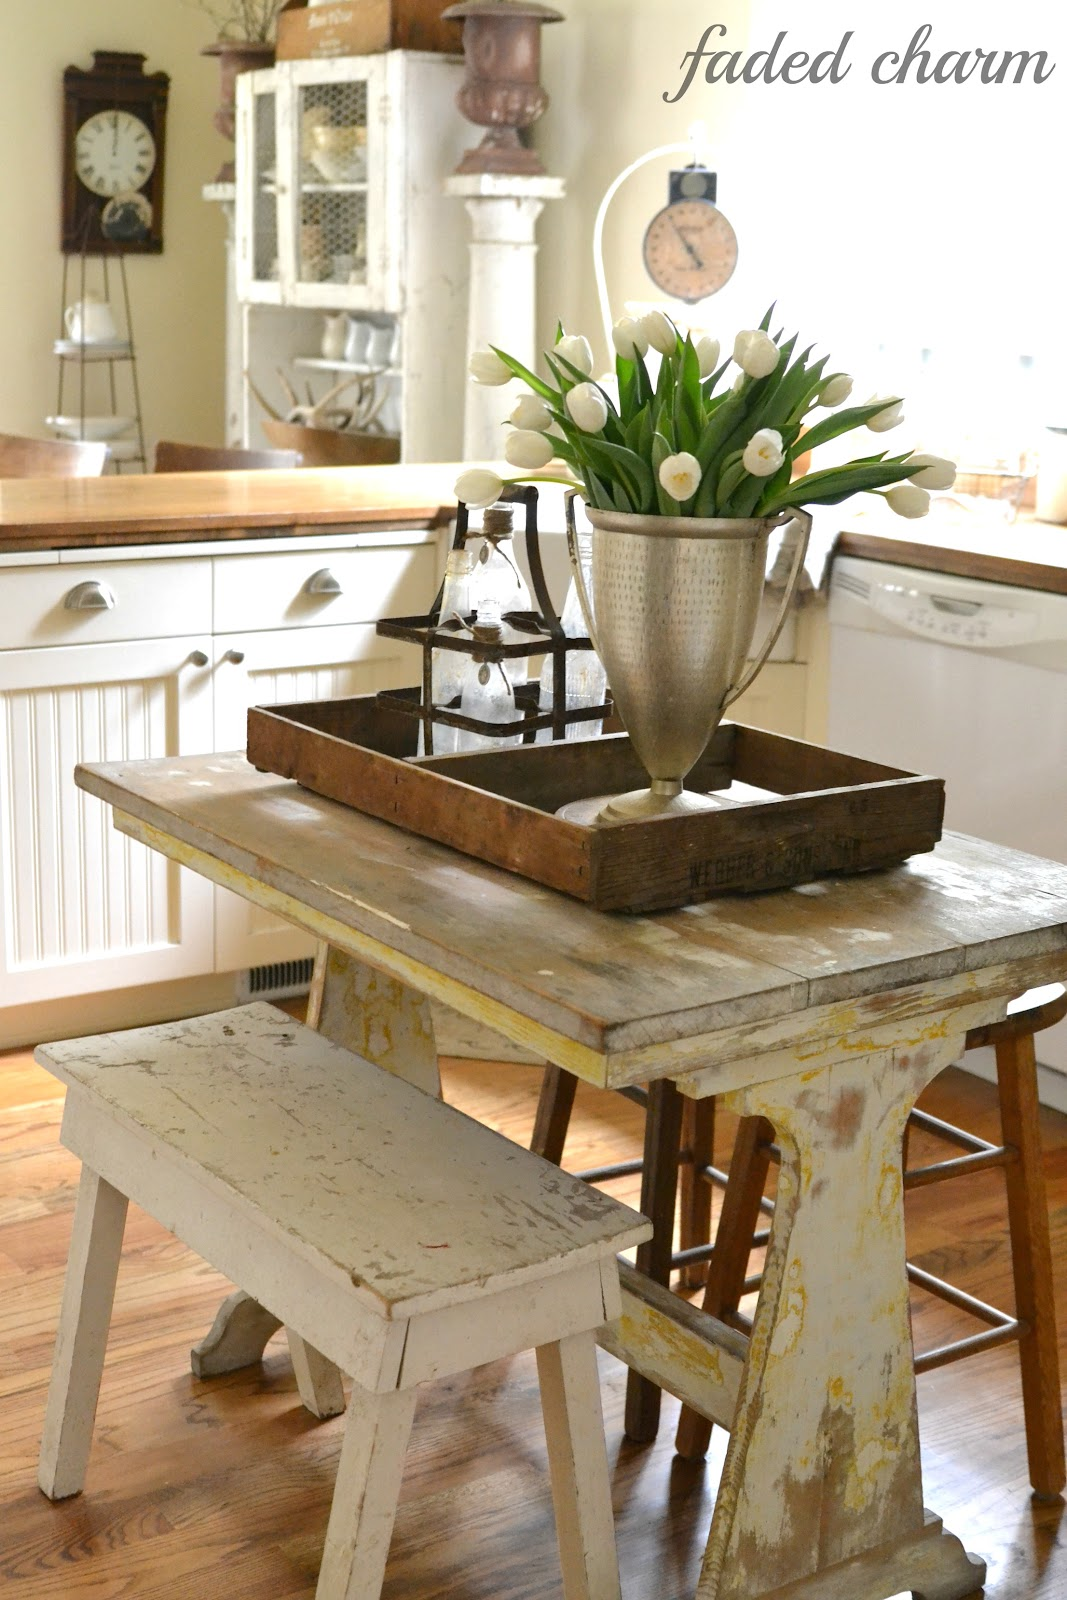 Small Kitchen Decorations Dining Room Furniture Cozy: Faded Charm: ~Tulips In The Kitchen~